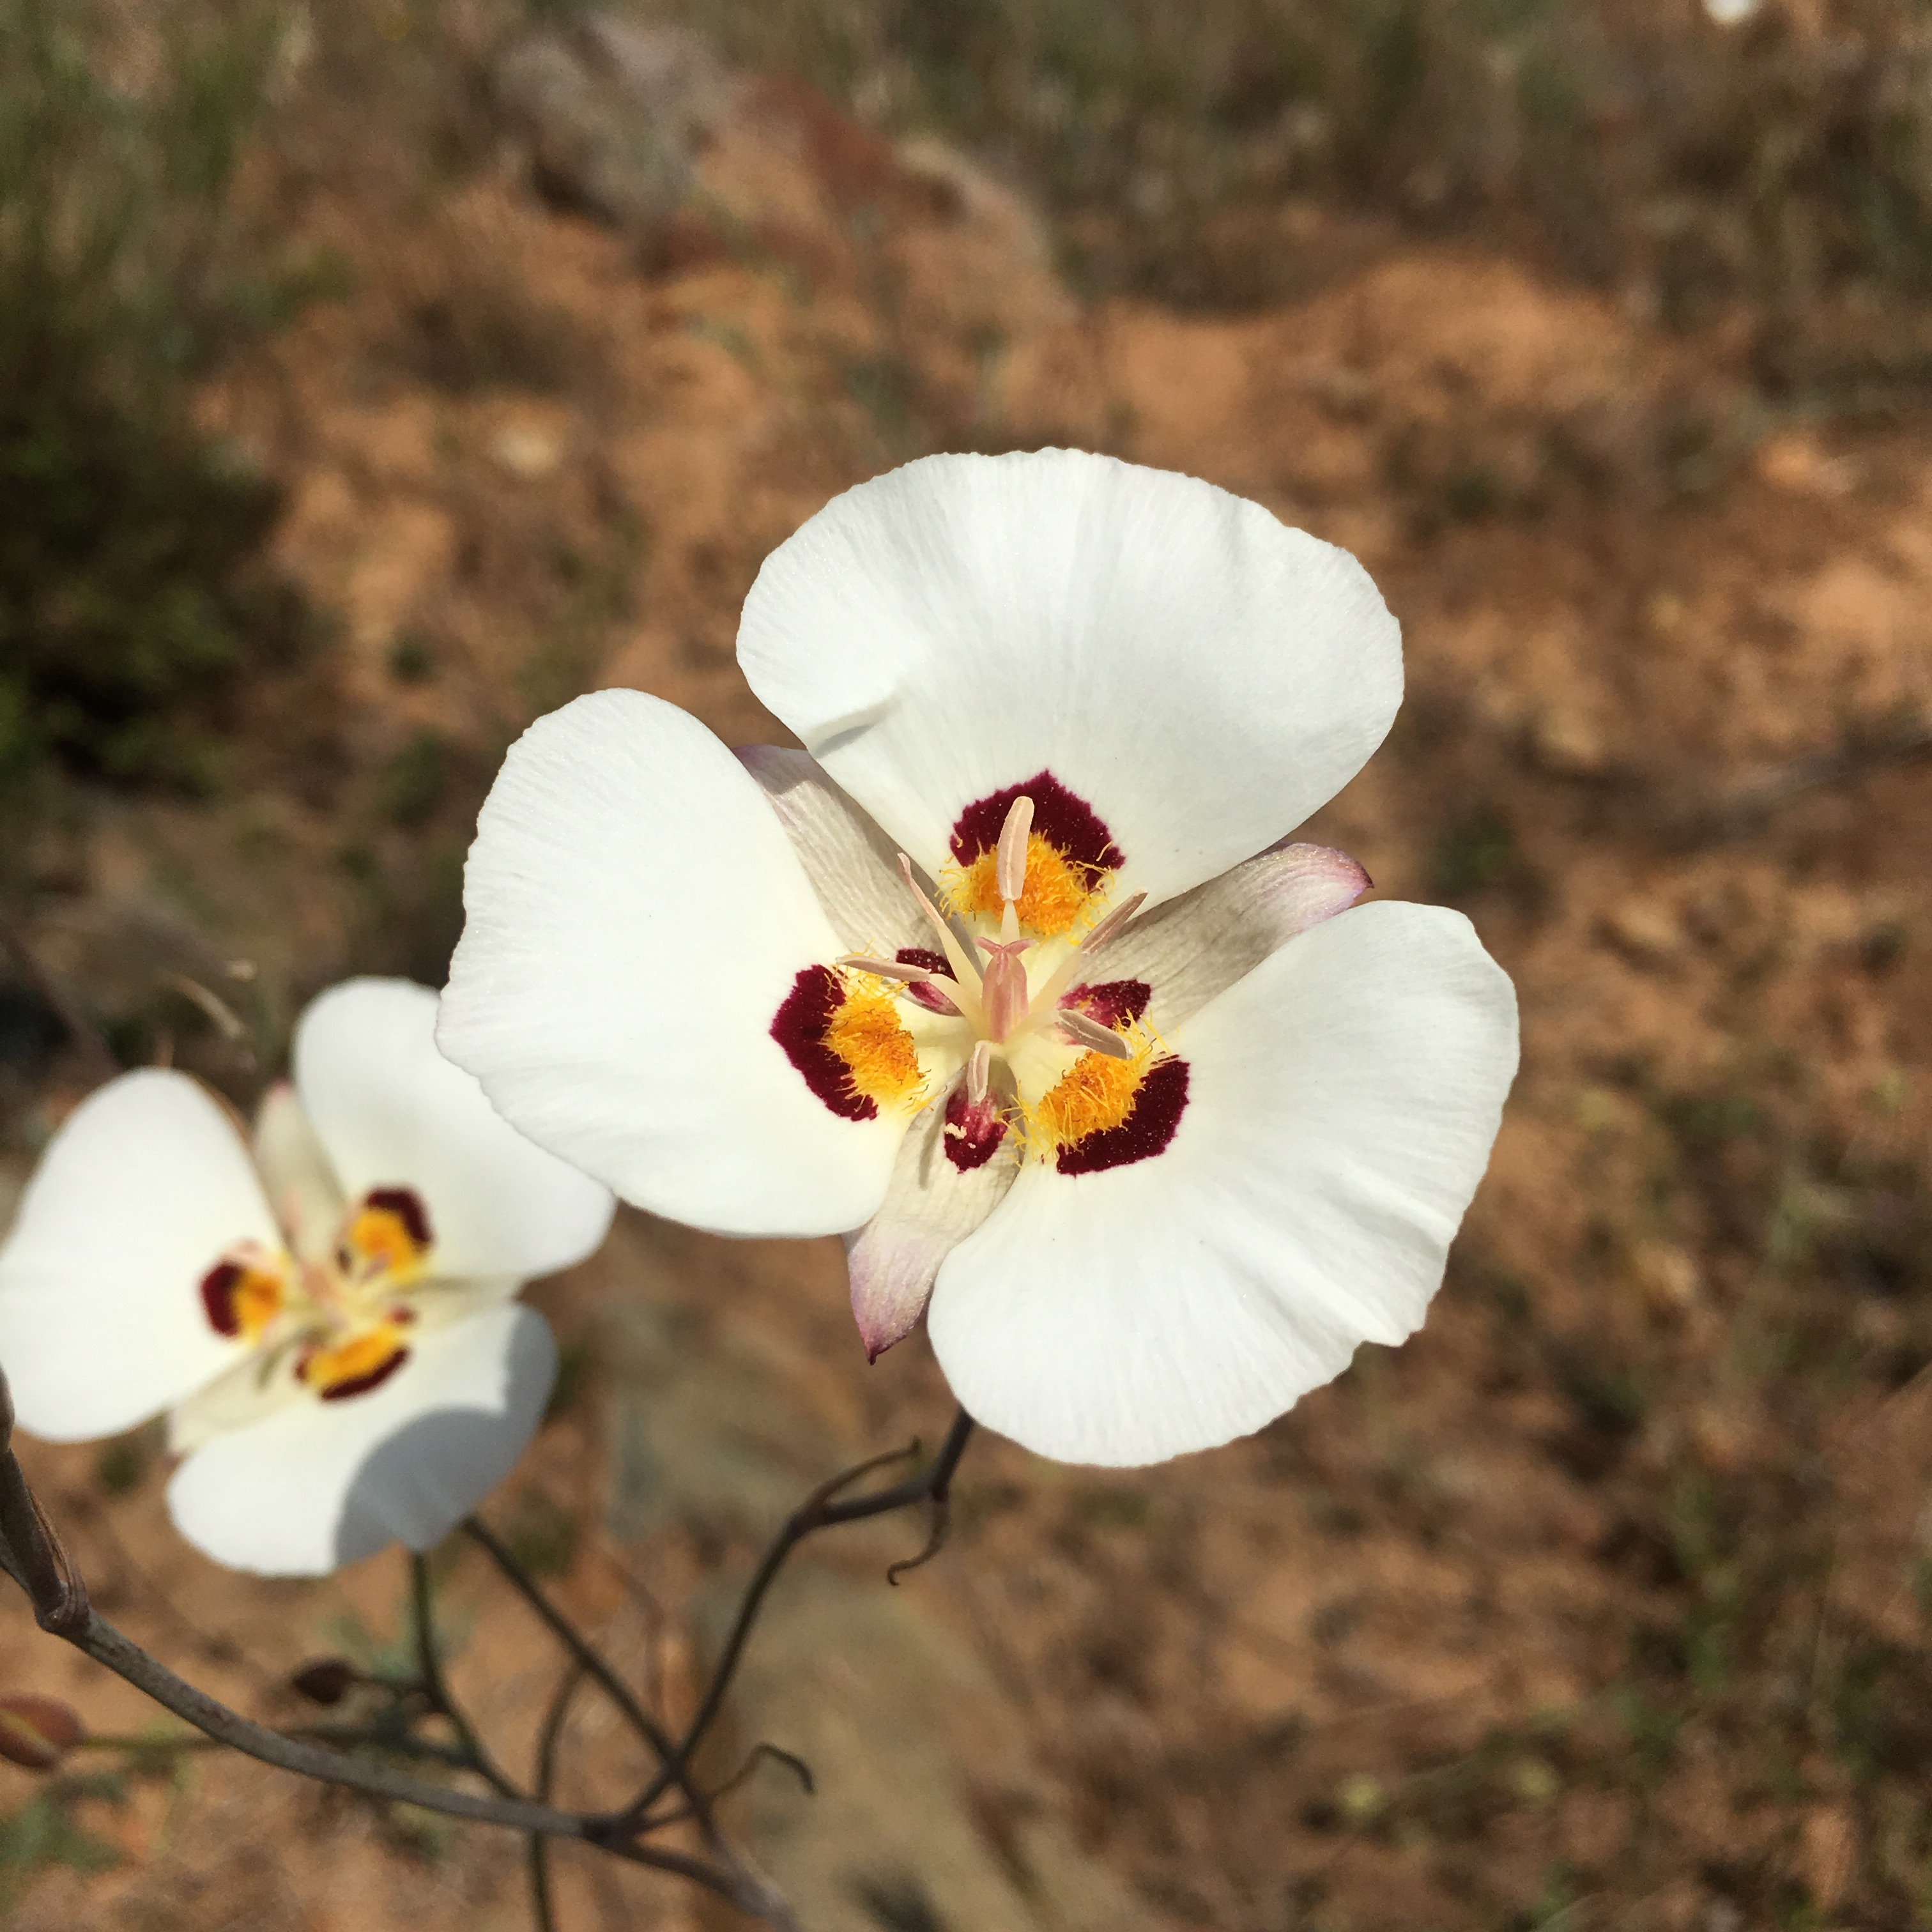 Calochortus dunnii has white petals with rust-colored spots above yellow, hairy nectaries.  Photo by Joe Davitt